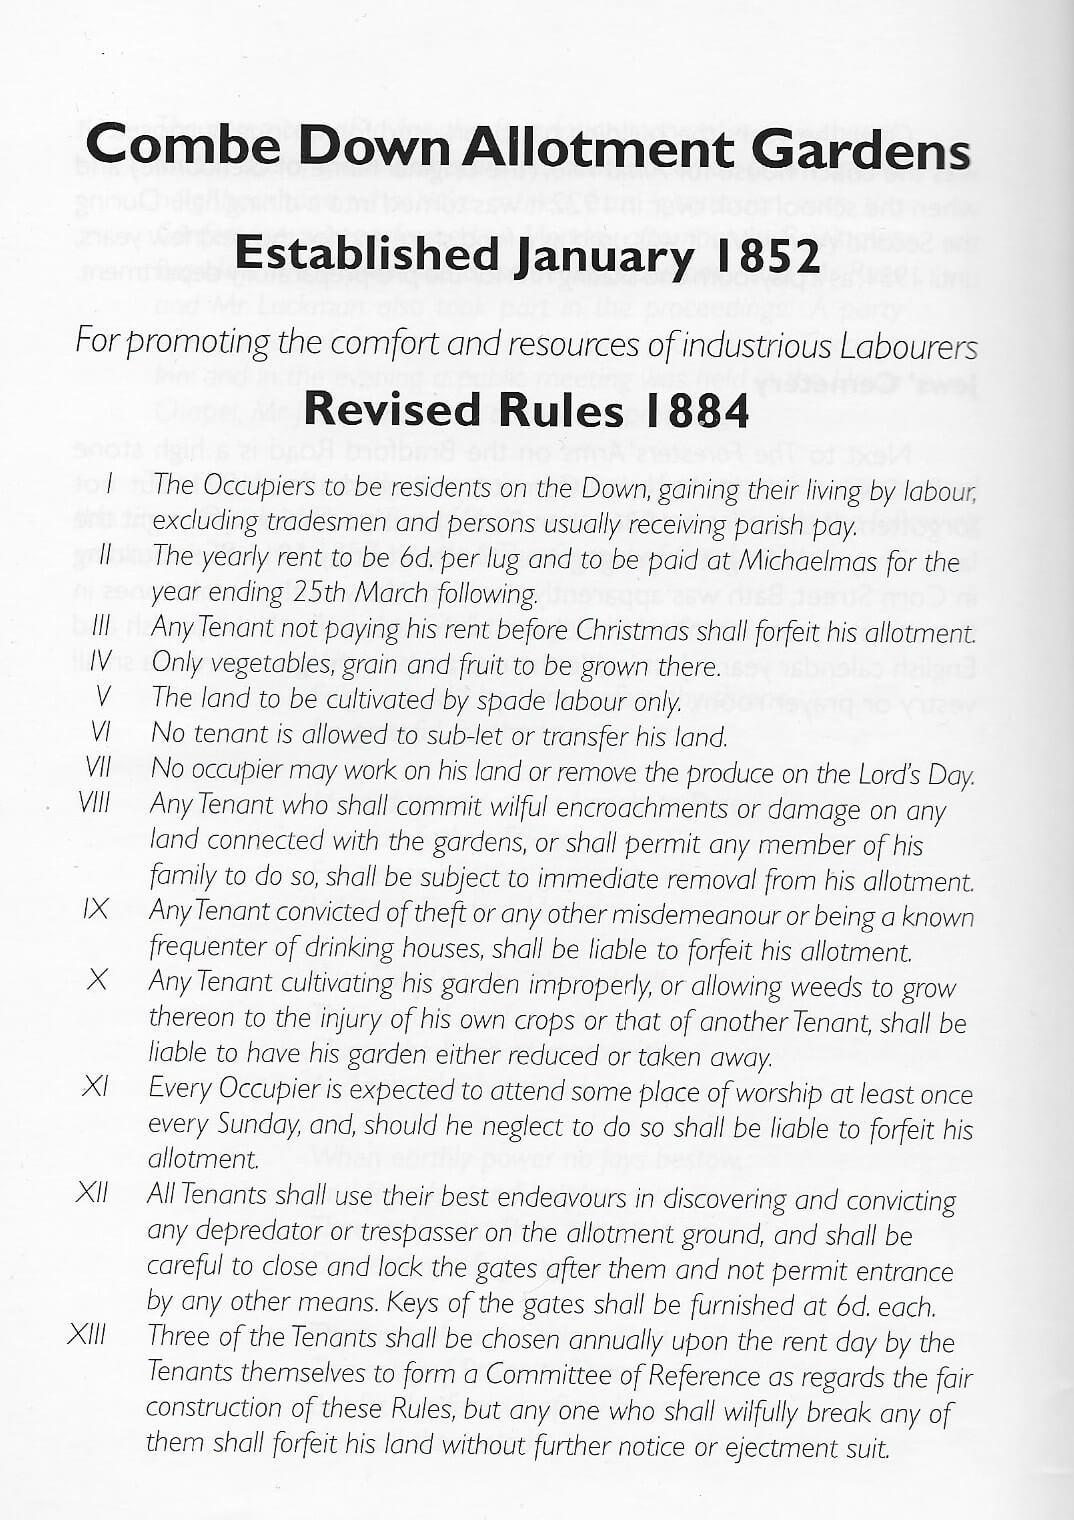 Combe Down allotments 1884 rules